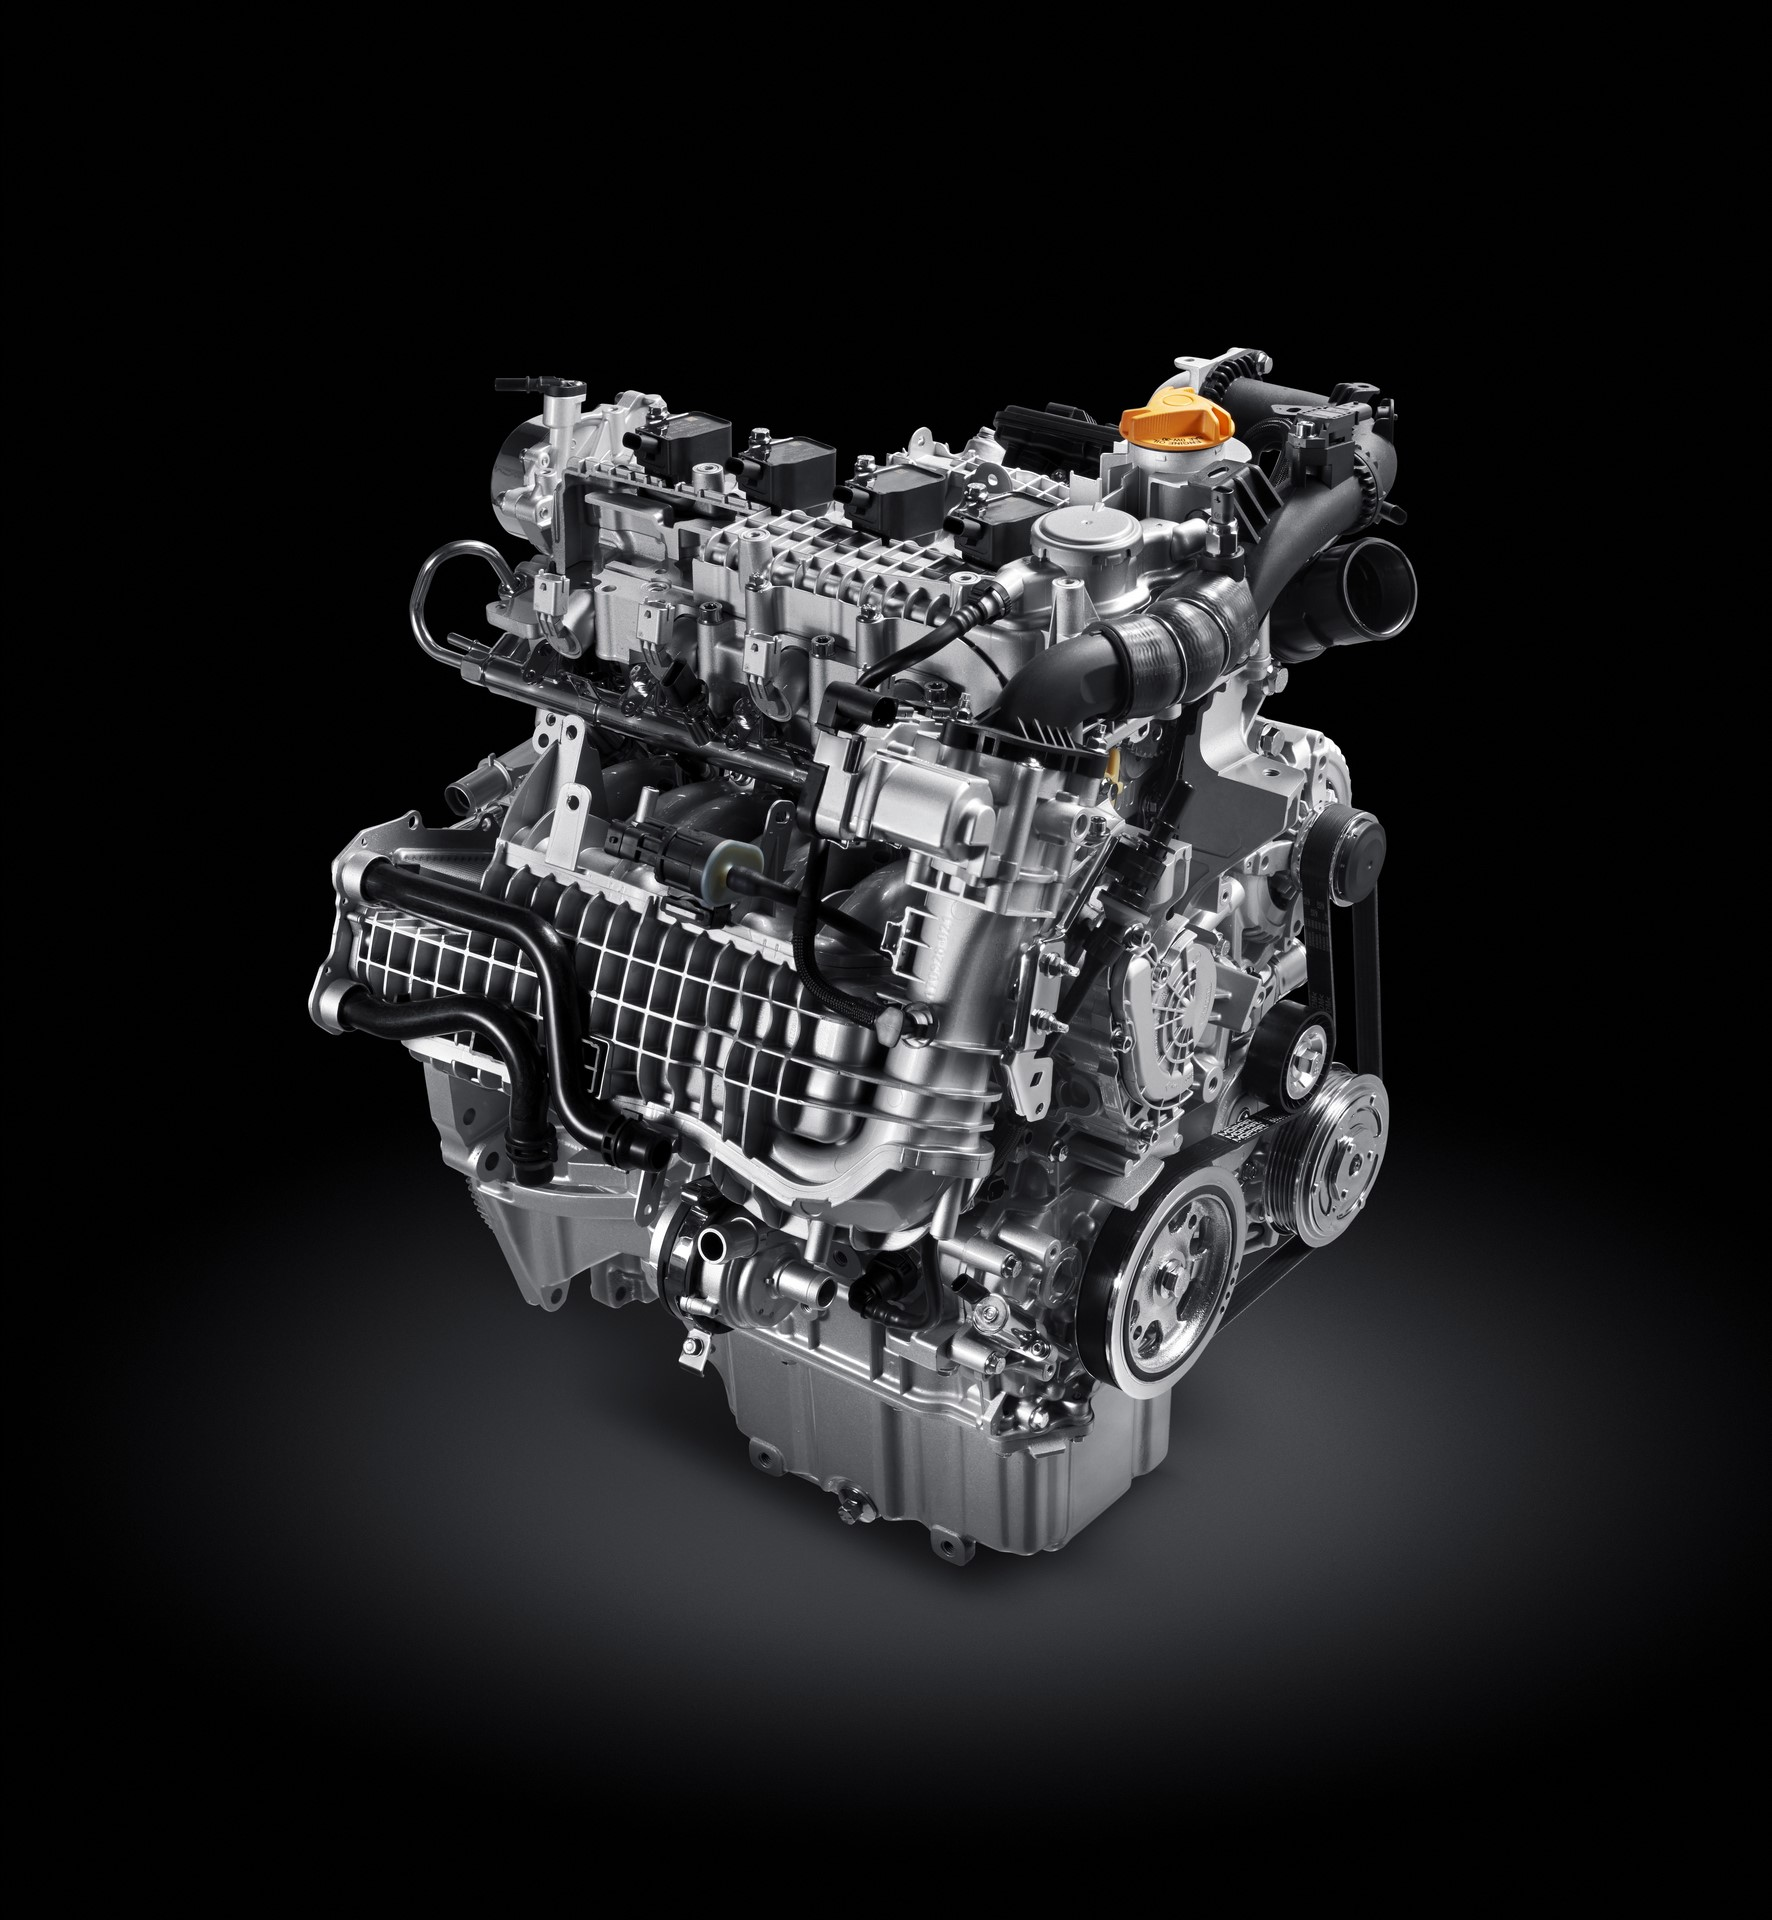 New-13L-Turbo-4-cylinder-150HP_16